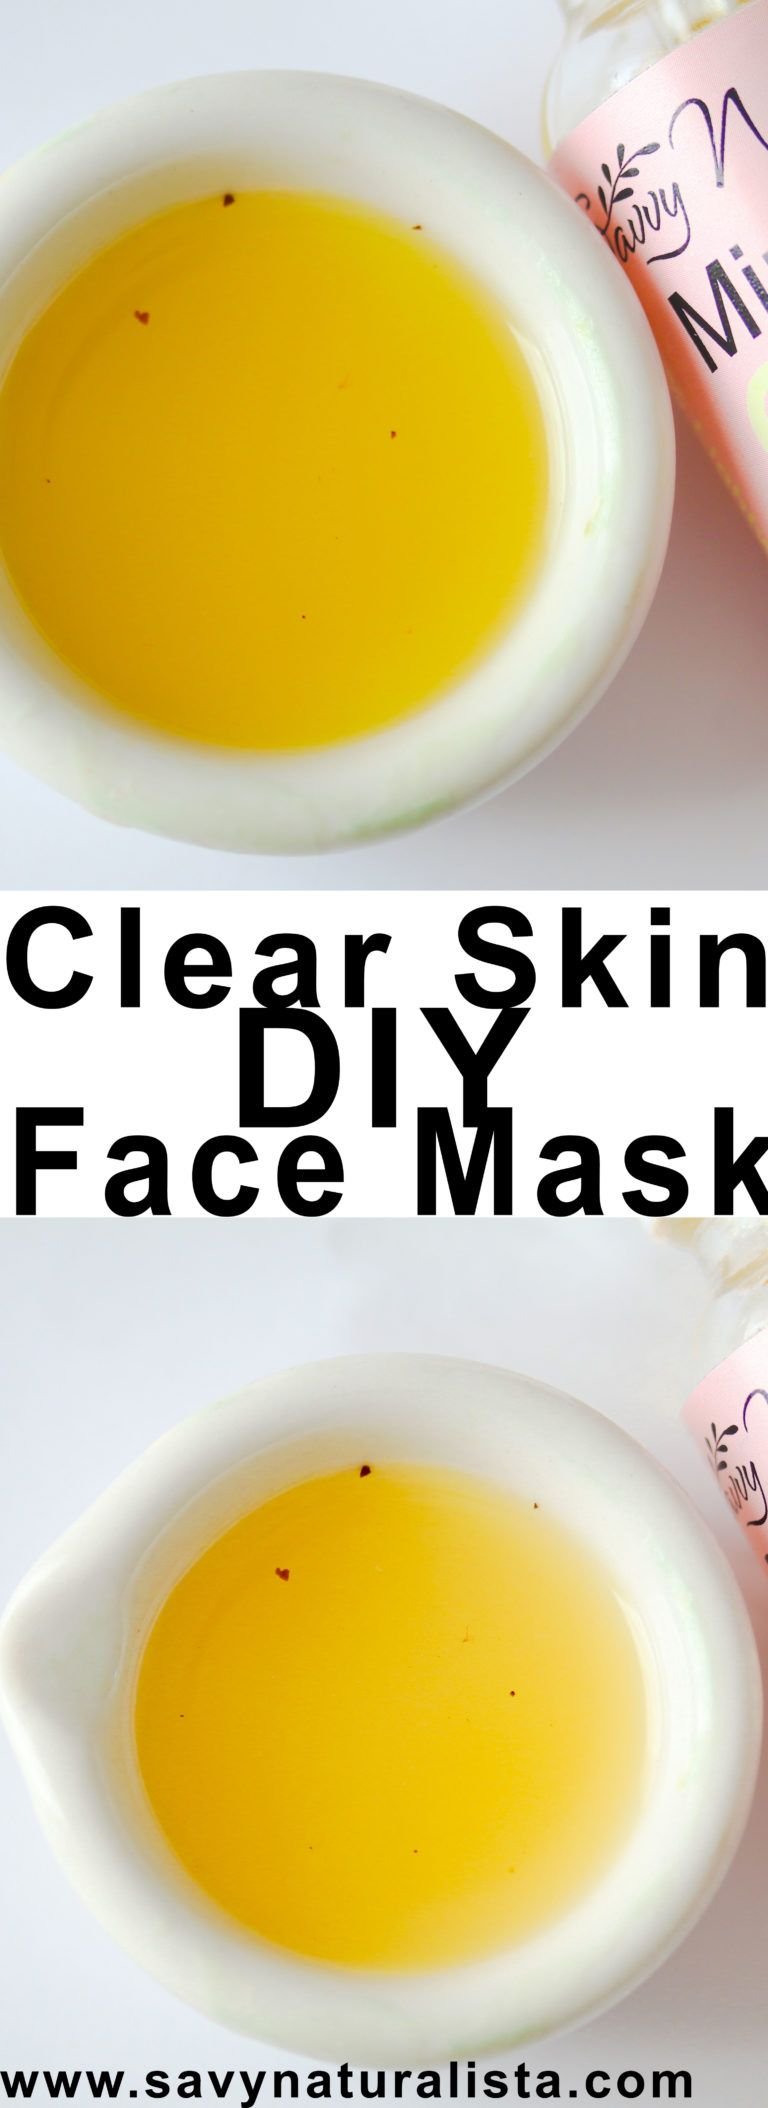 Looking to get clear skin with just two simple ingredients! Make sure you check out this easy clear skin Face mask DIY